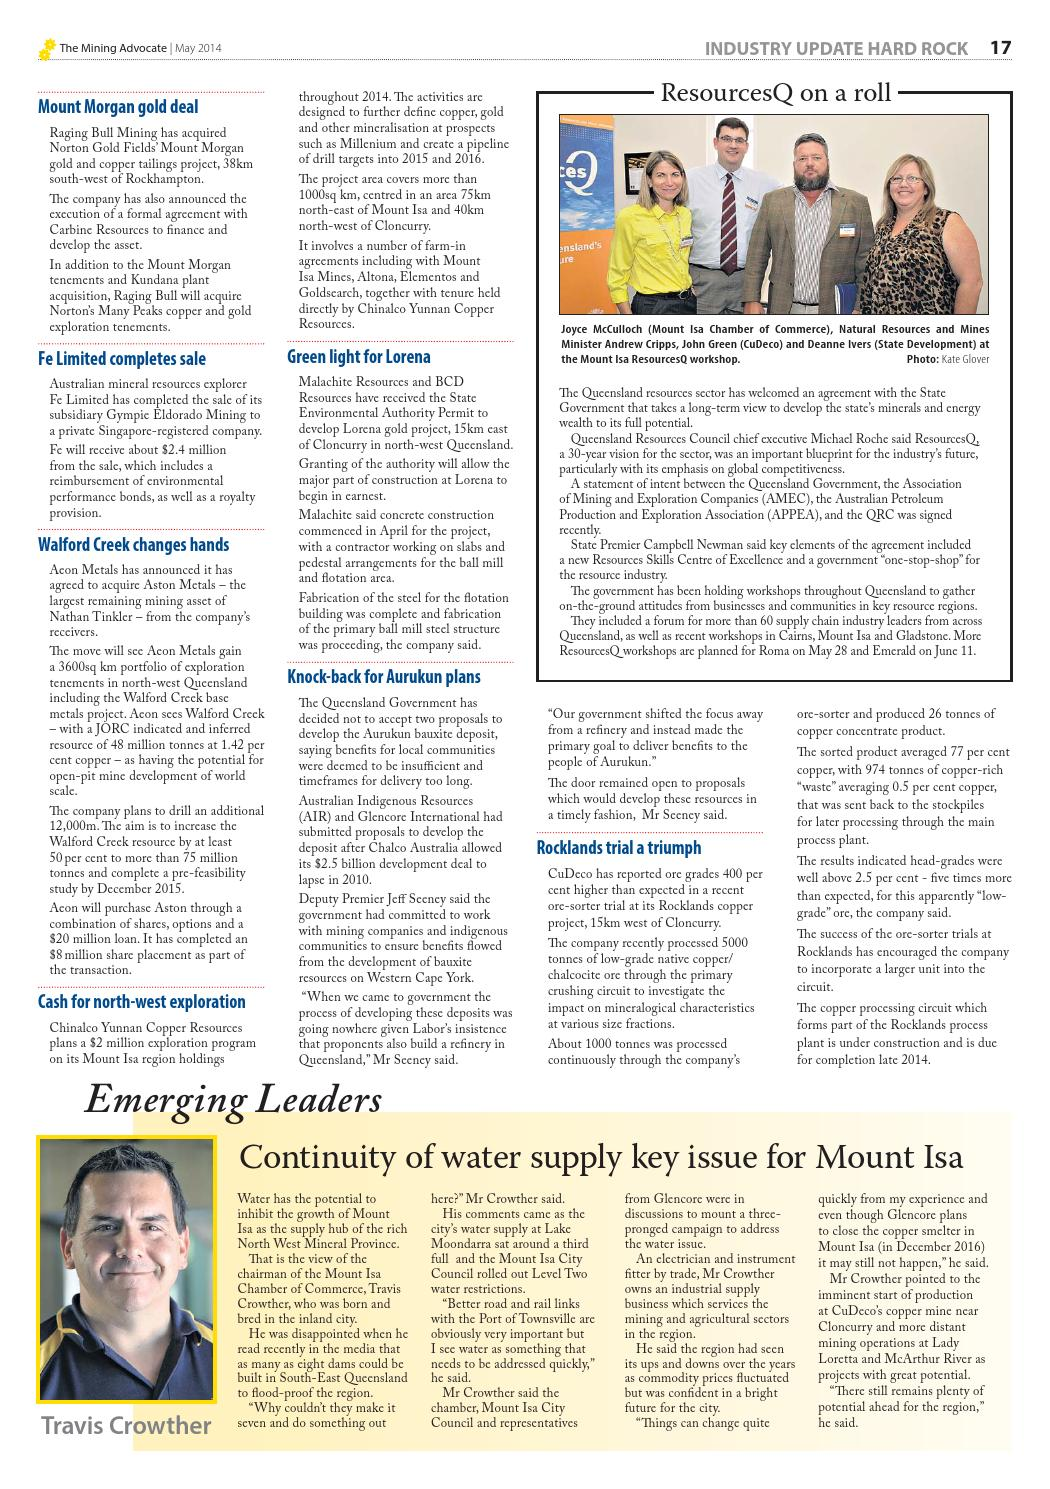 The Mining Advocate May 2014 edition by The Mining Advocate - issuu